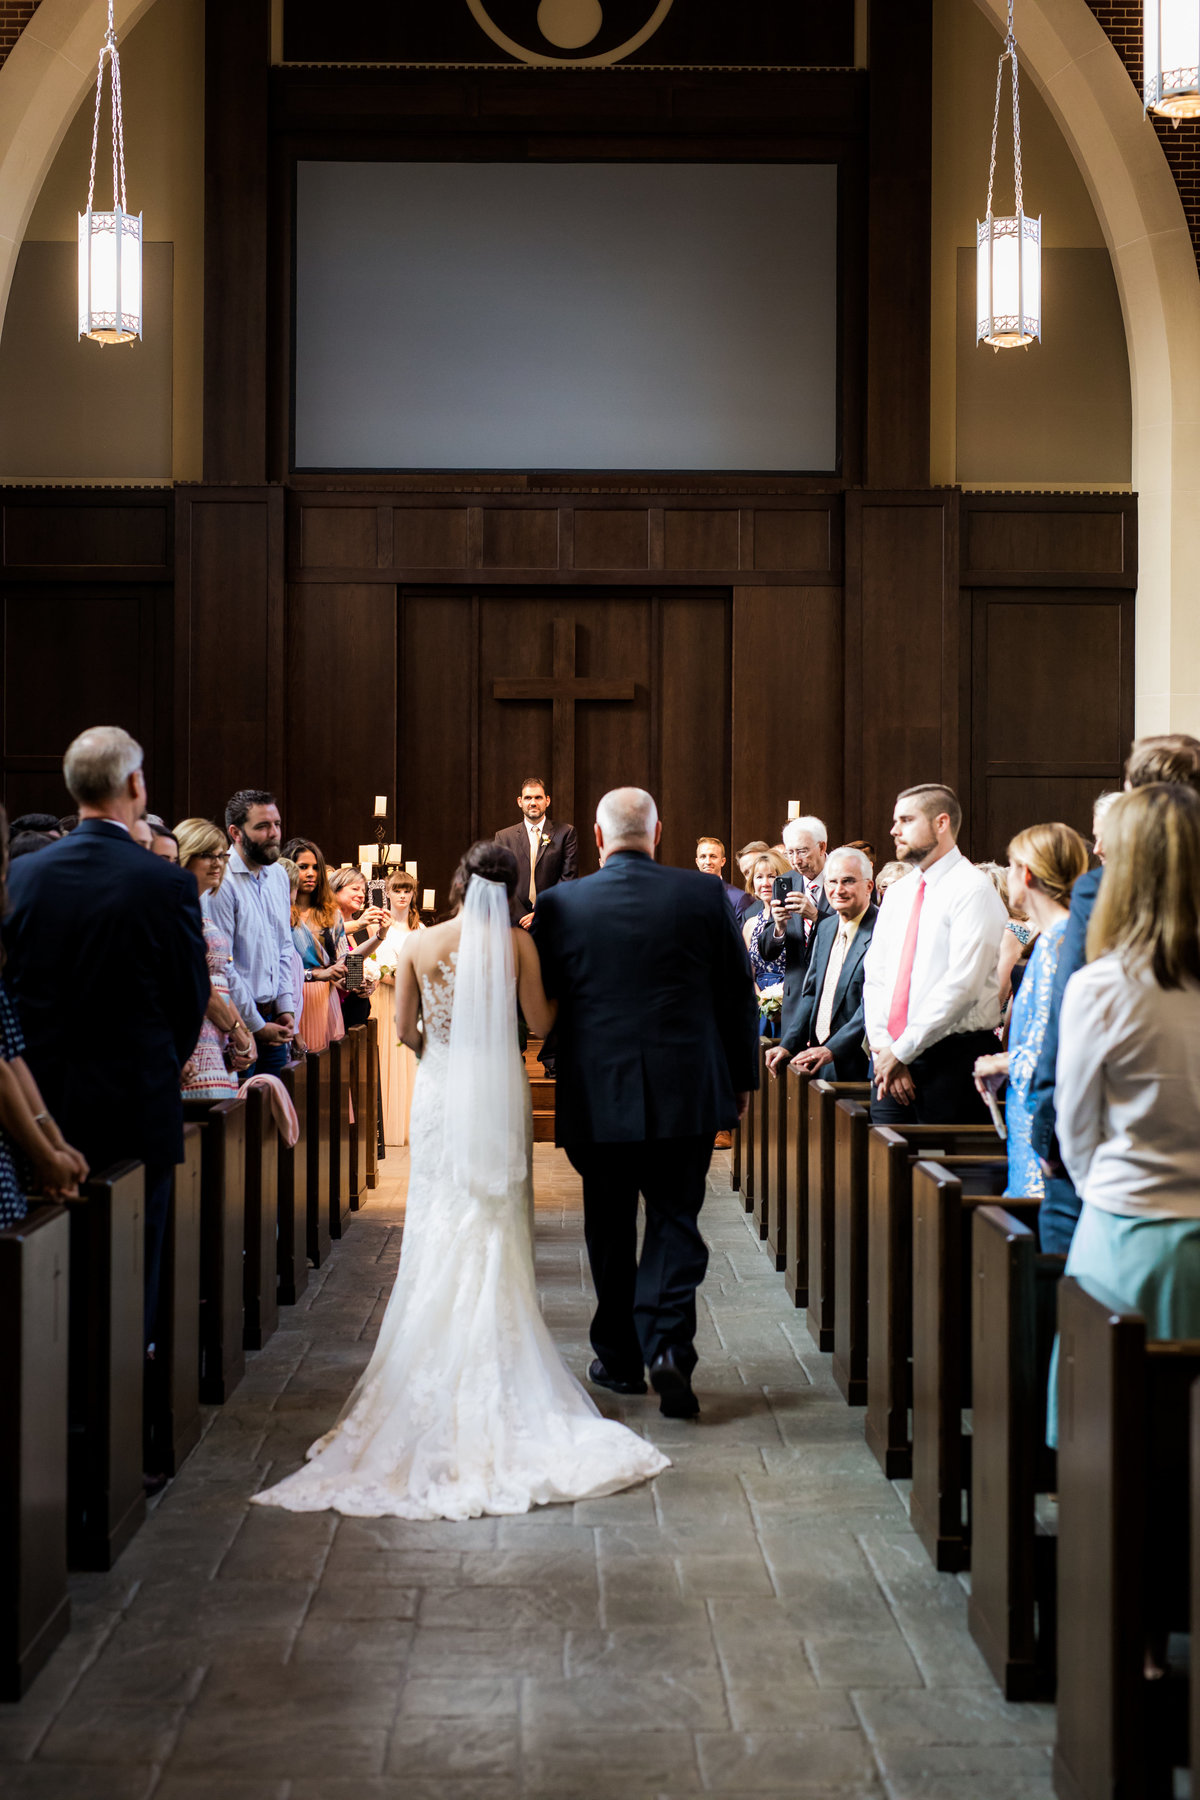 Baptist Wedding - Church Wedding - Church Weddings - Nashville Church Weddings - nashville TN - Nashville Weddings - Nashville Wedding - Couples Who Love Jesus - SouthernBride - SouthernBrides - Nashville Bride032